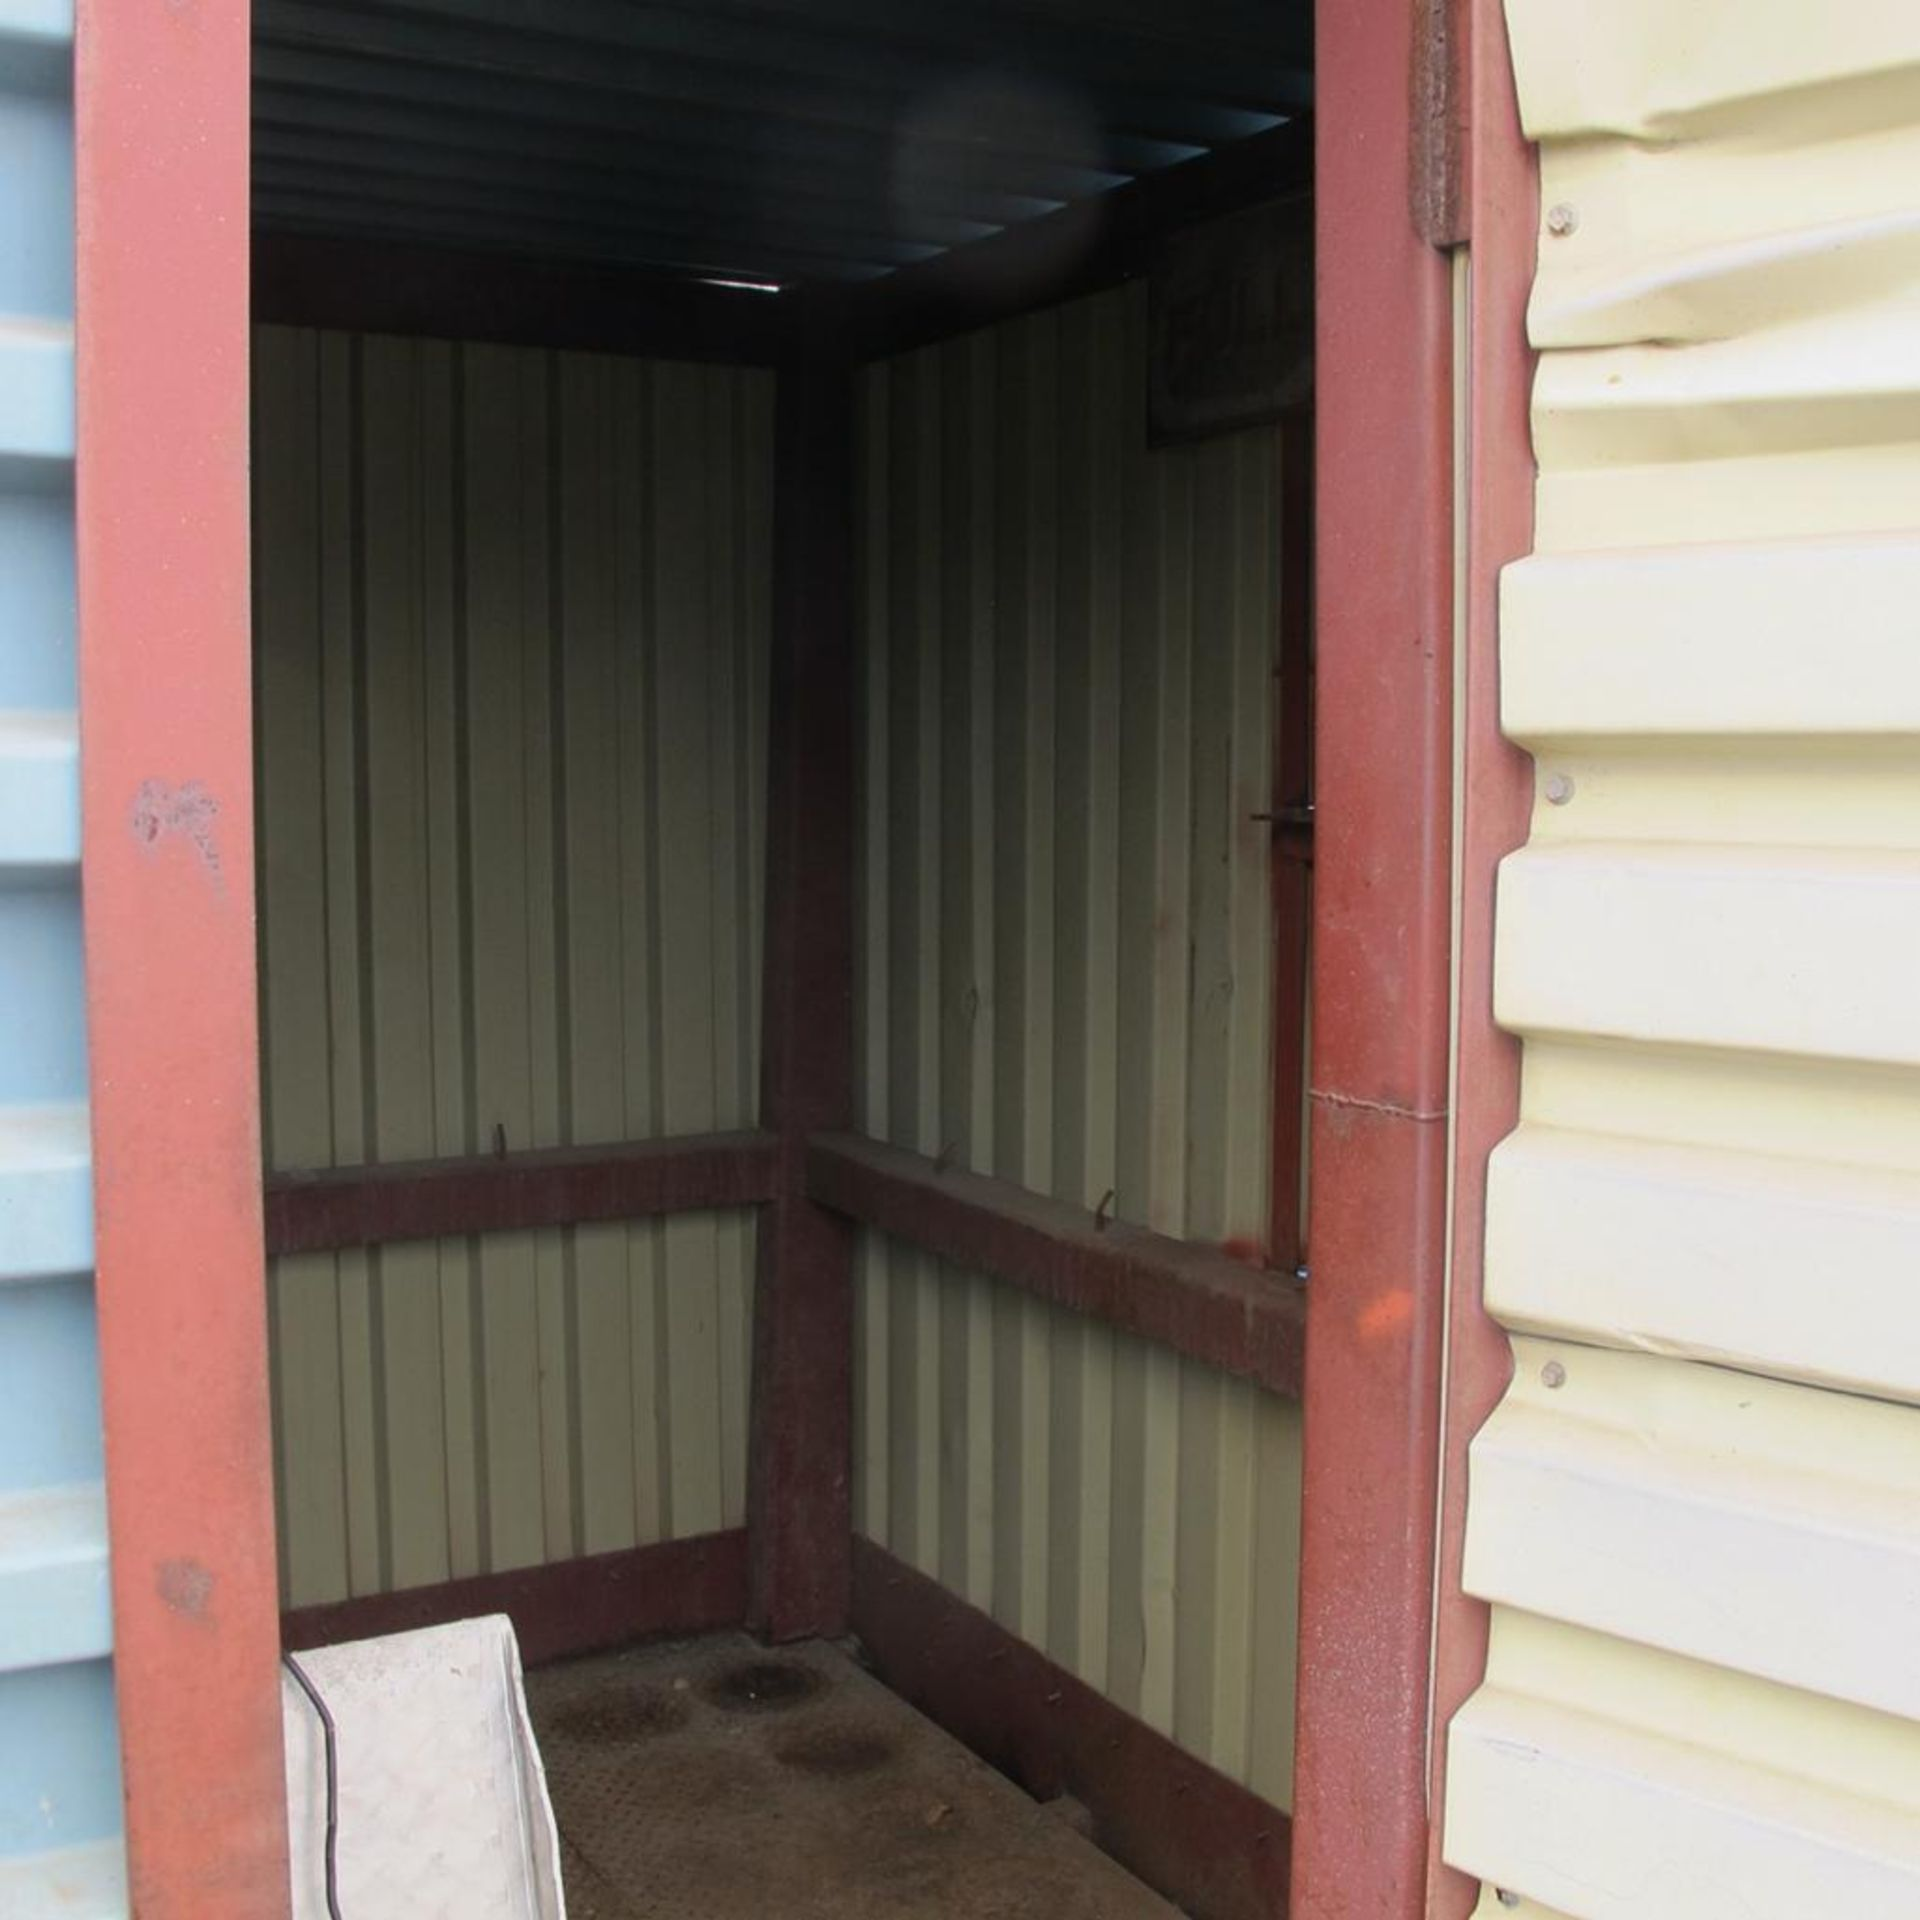 Lot 488 - PORTABLE STEEL GAS STORAGE SHED WITH FOLD DOWN RAMP (WEST YARD)